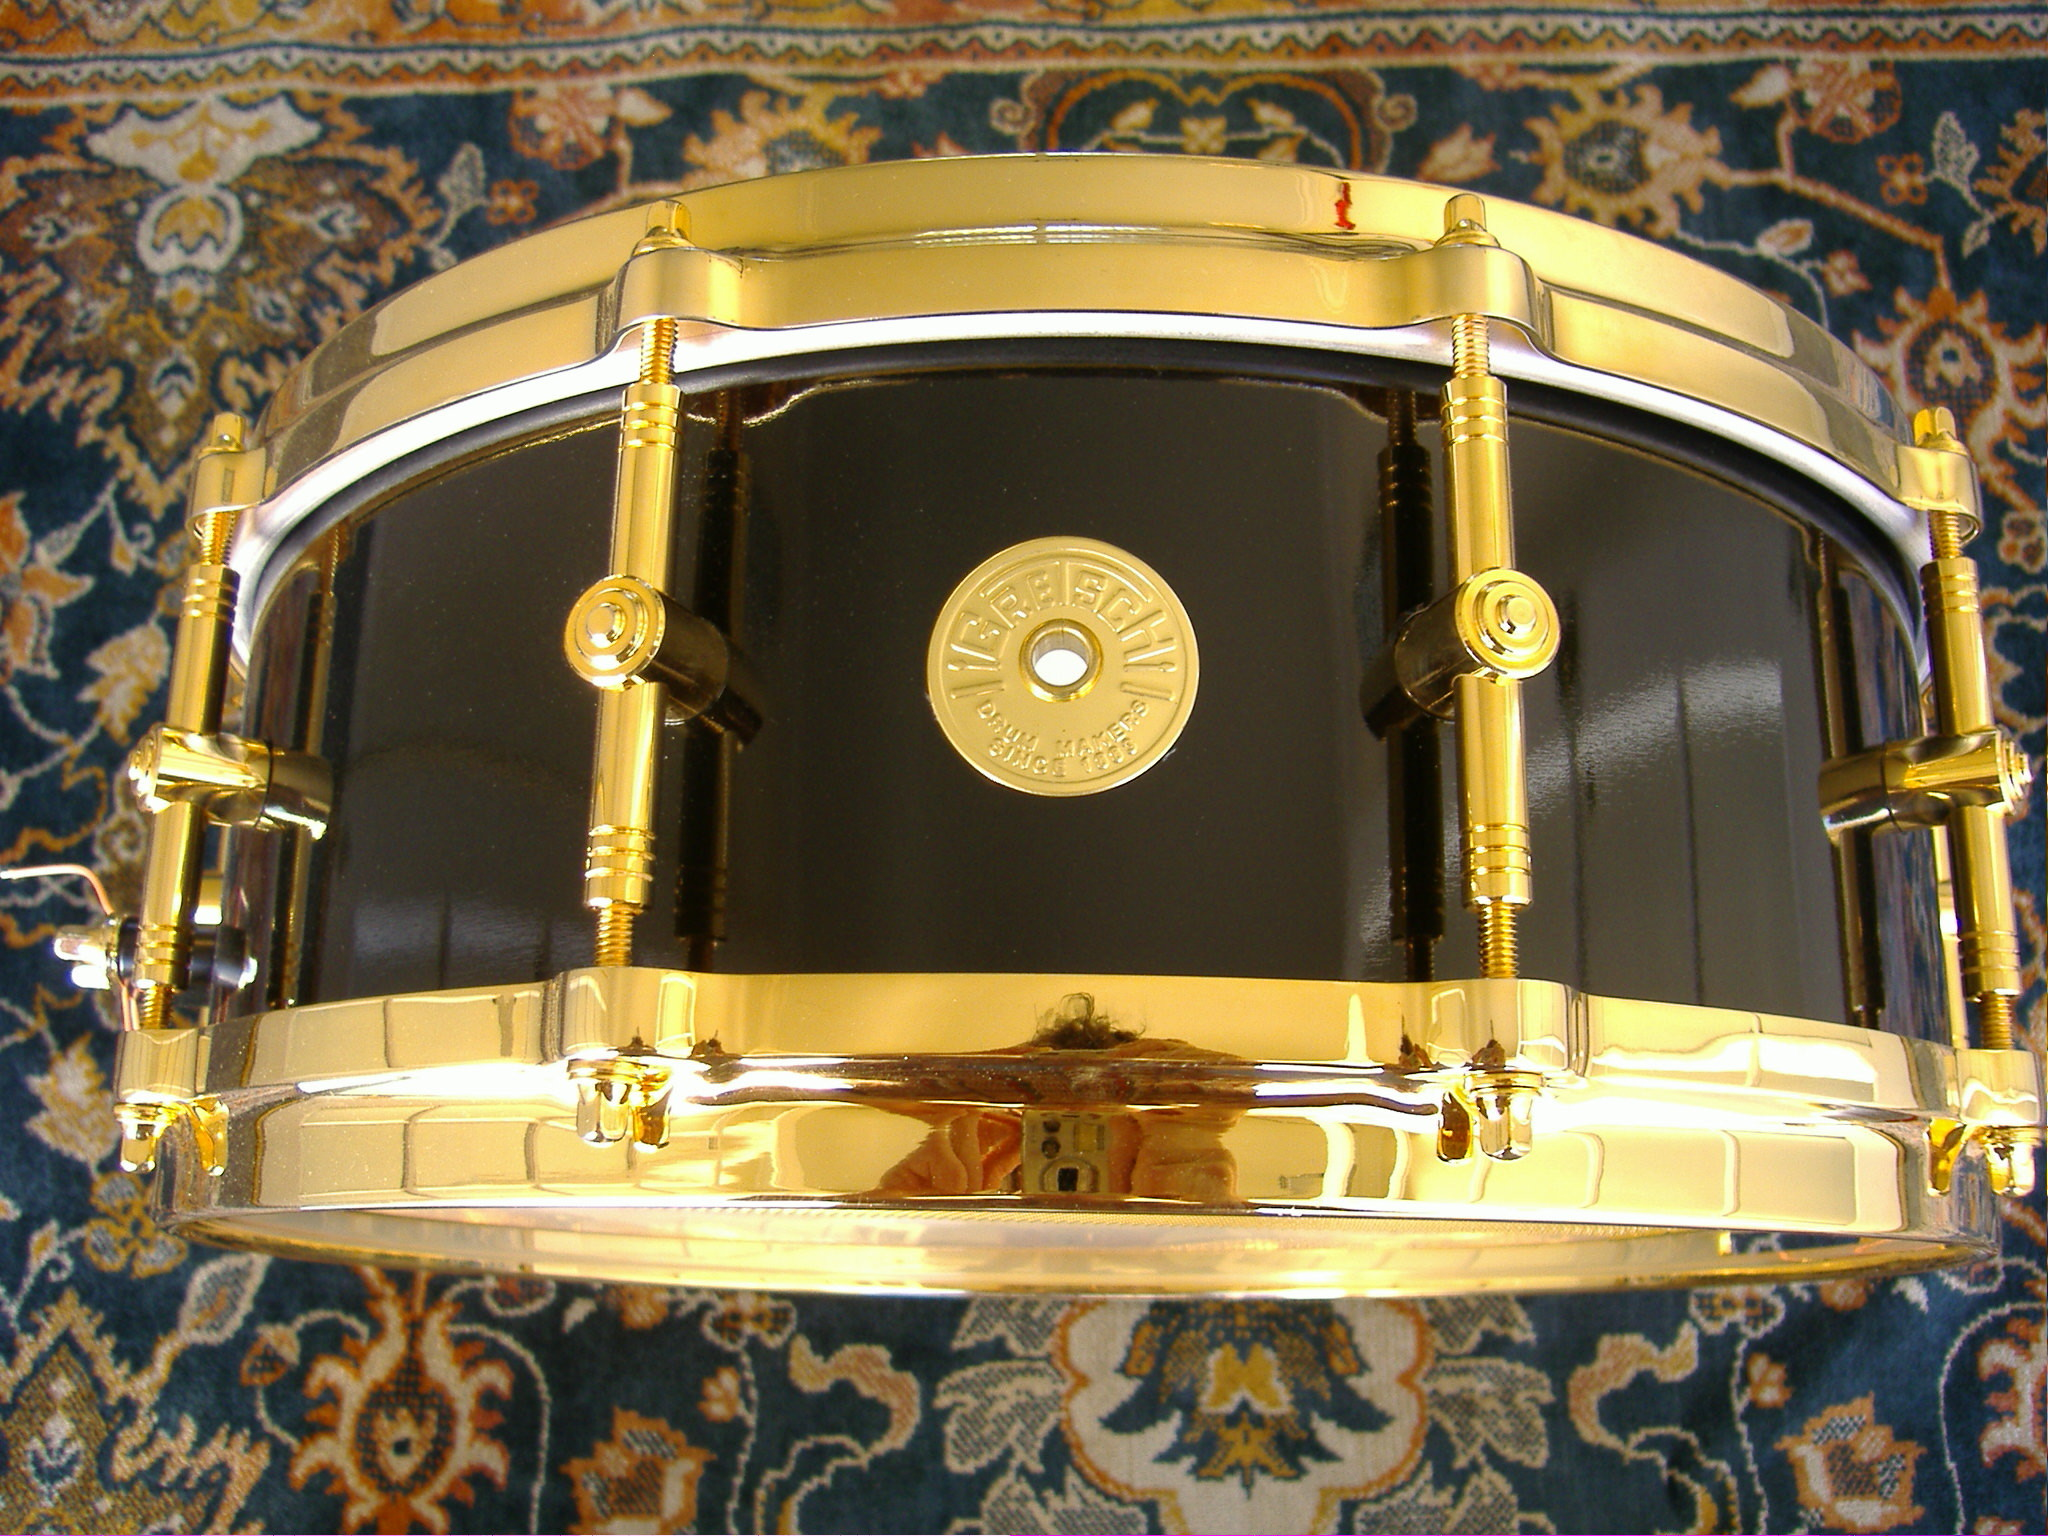 Res: 2048x1536, Gretsch 120th Anniversary Snare Drum with Gold Hardware and Paperwork